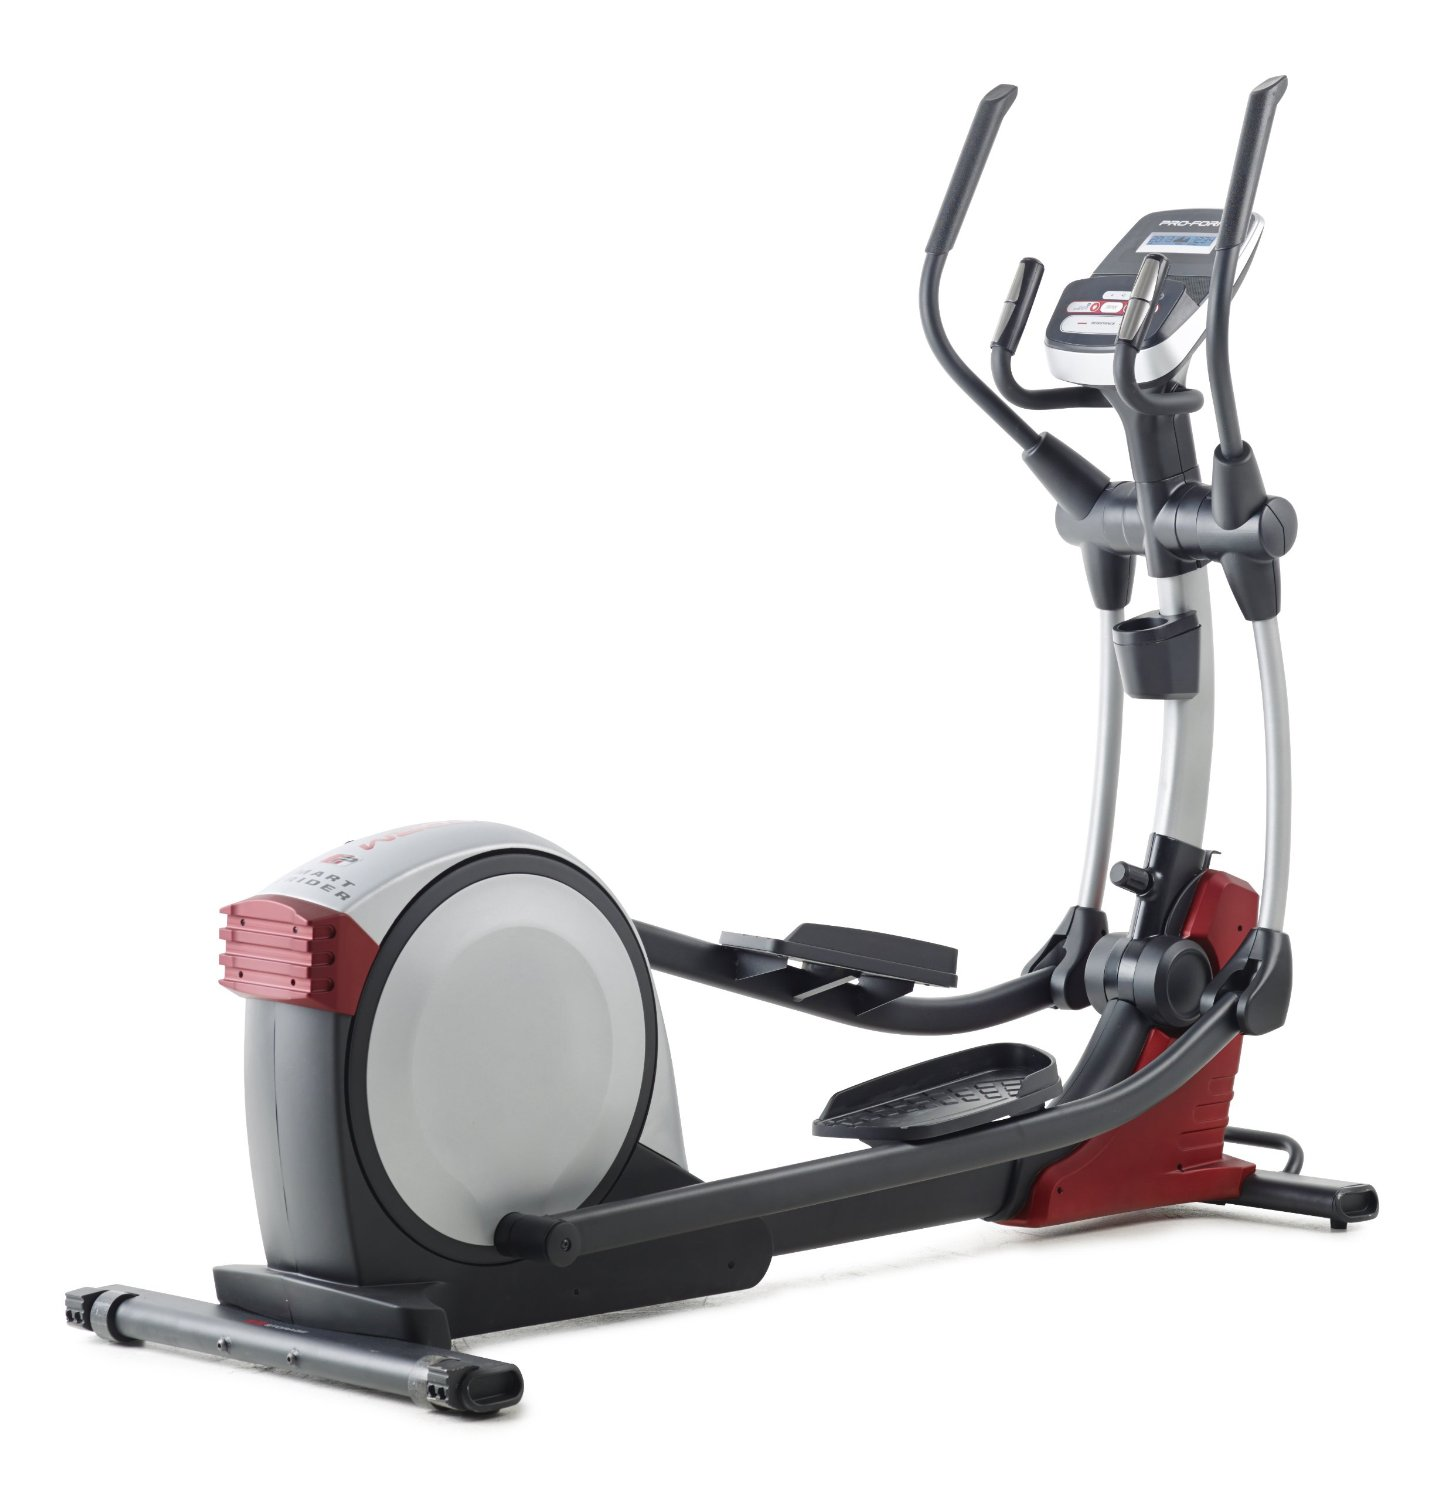 ProFrom Smart Strider Elliptical Trainer Review